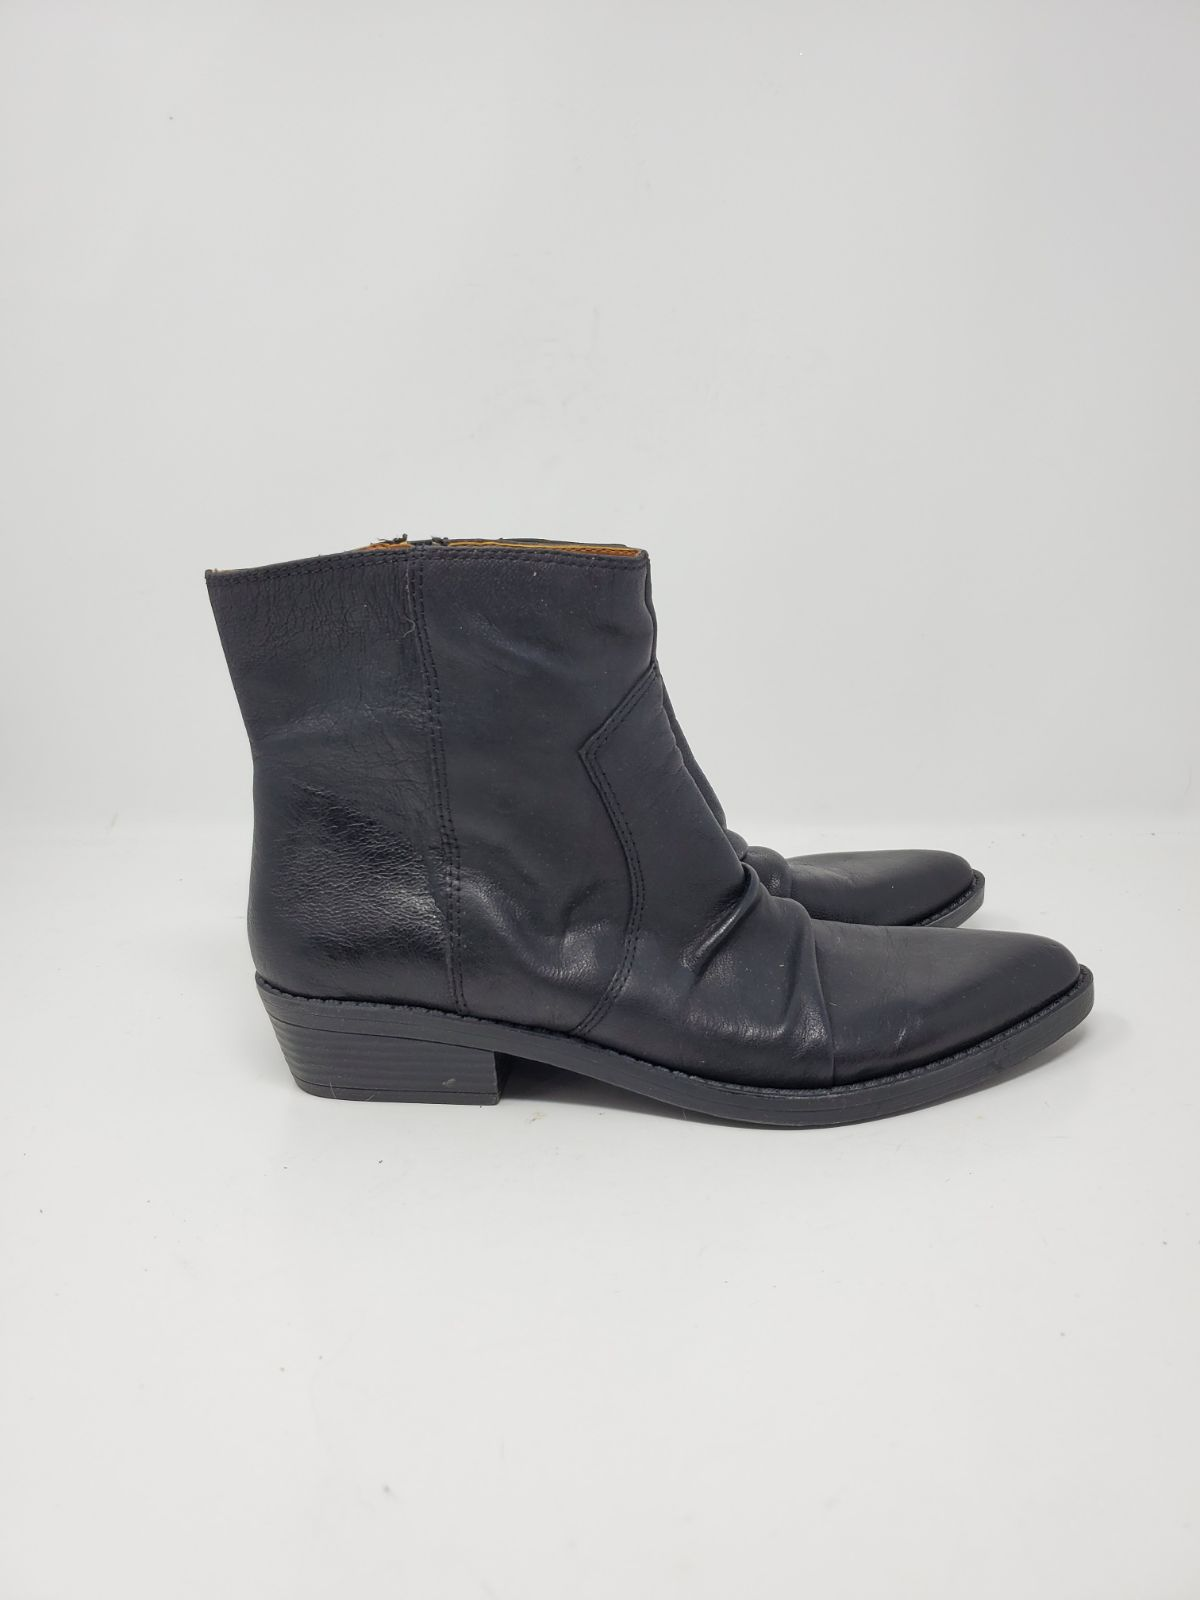 New beautiful vintage leather boots